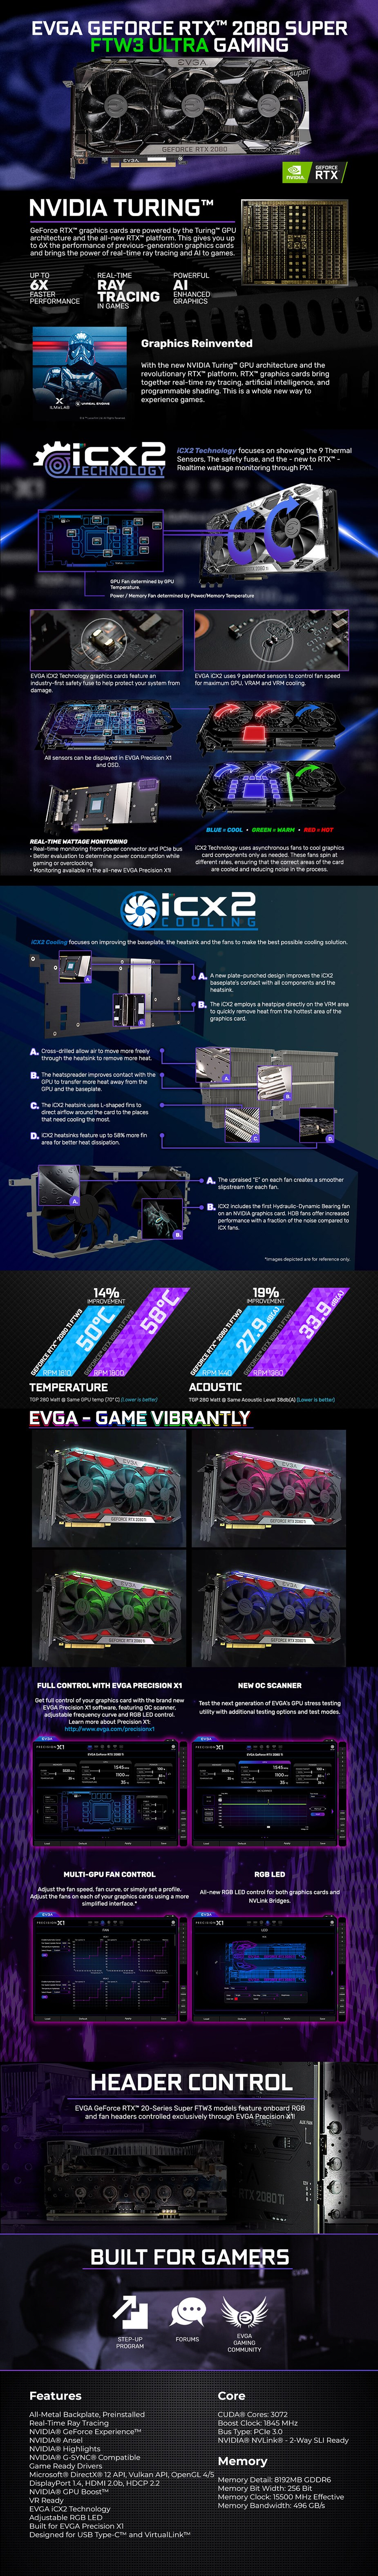 EVGA GeForce RTX 2080 SUPER FTW3 ULTRA GAMING 8GB Video Card - Overview 1